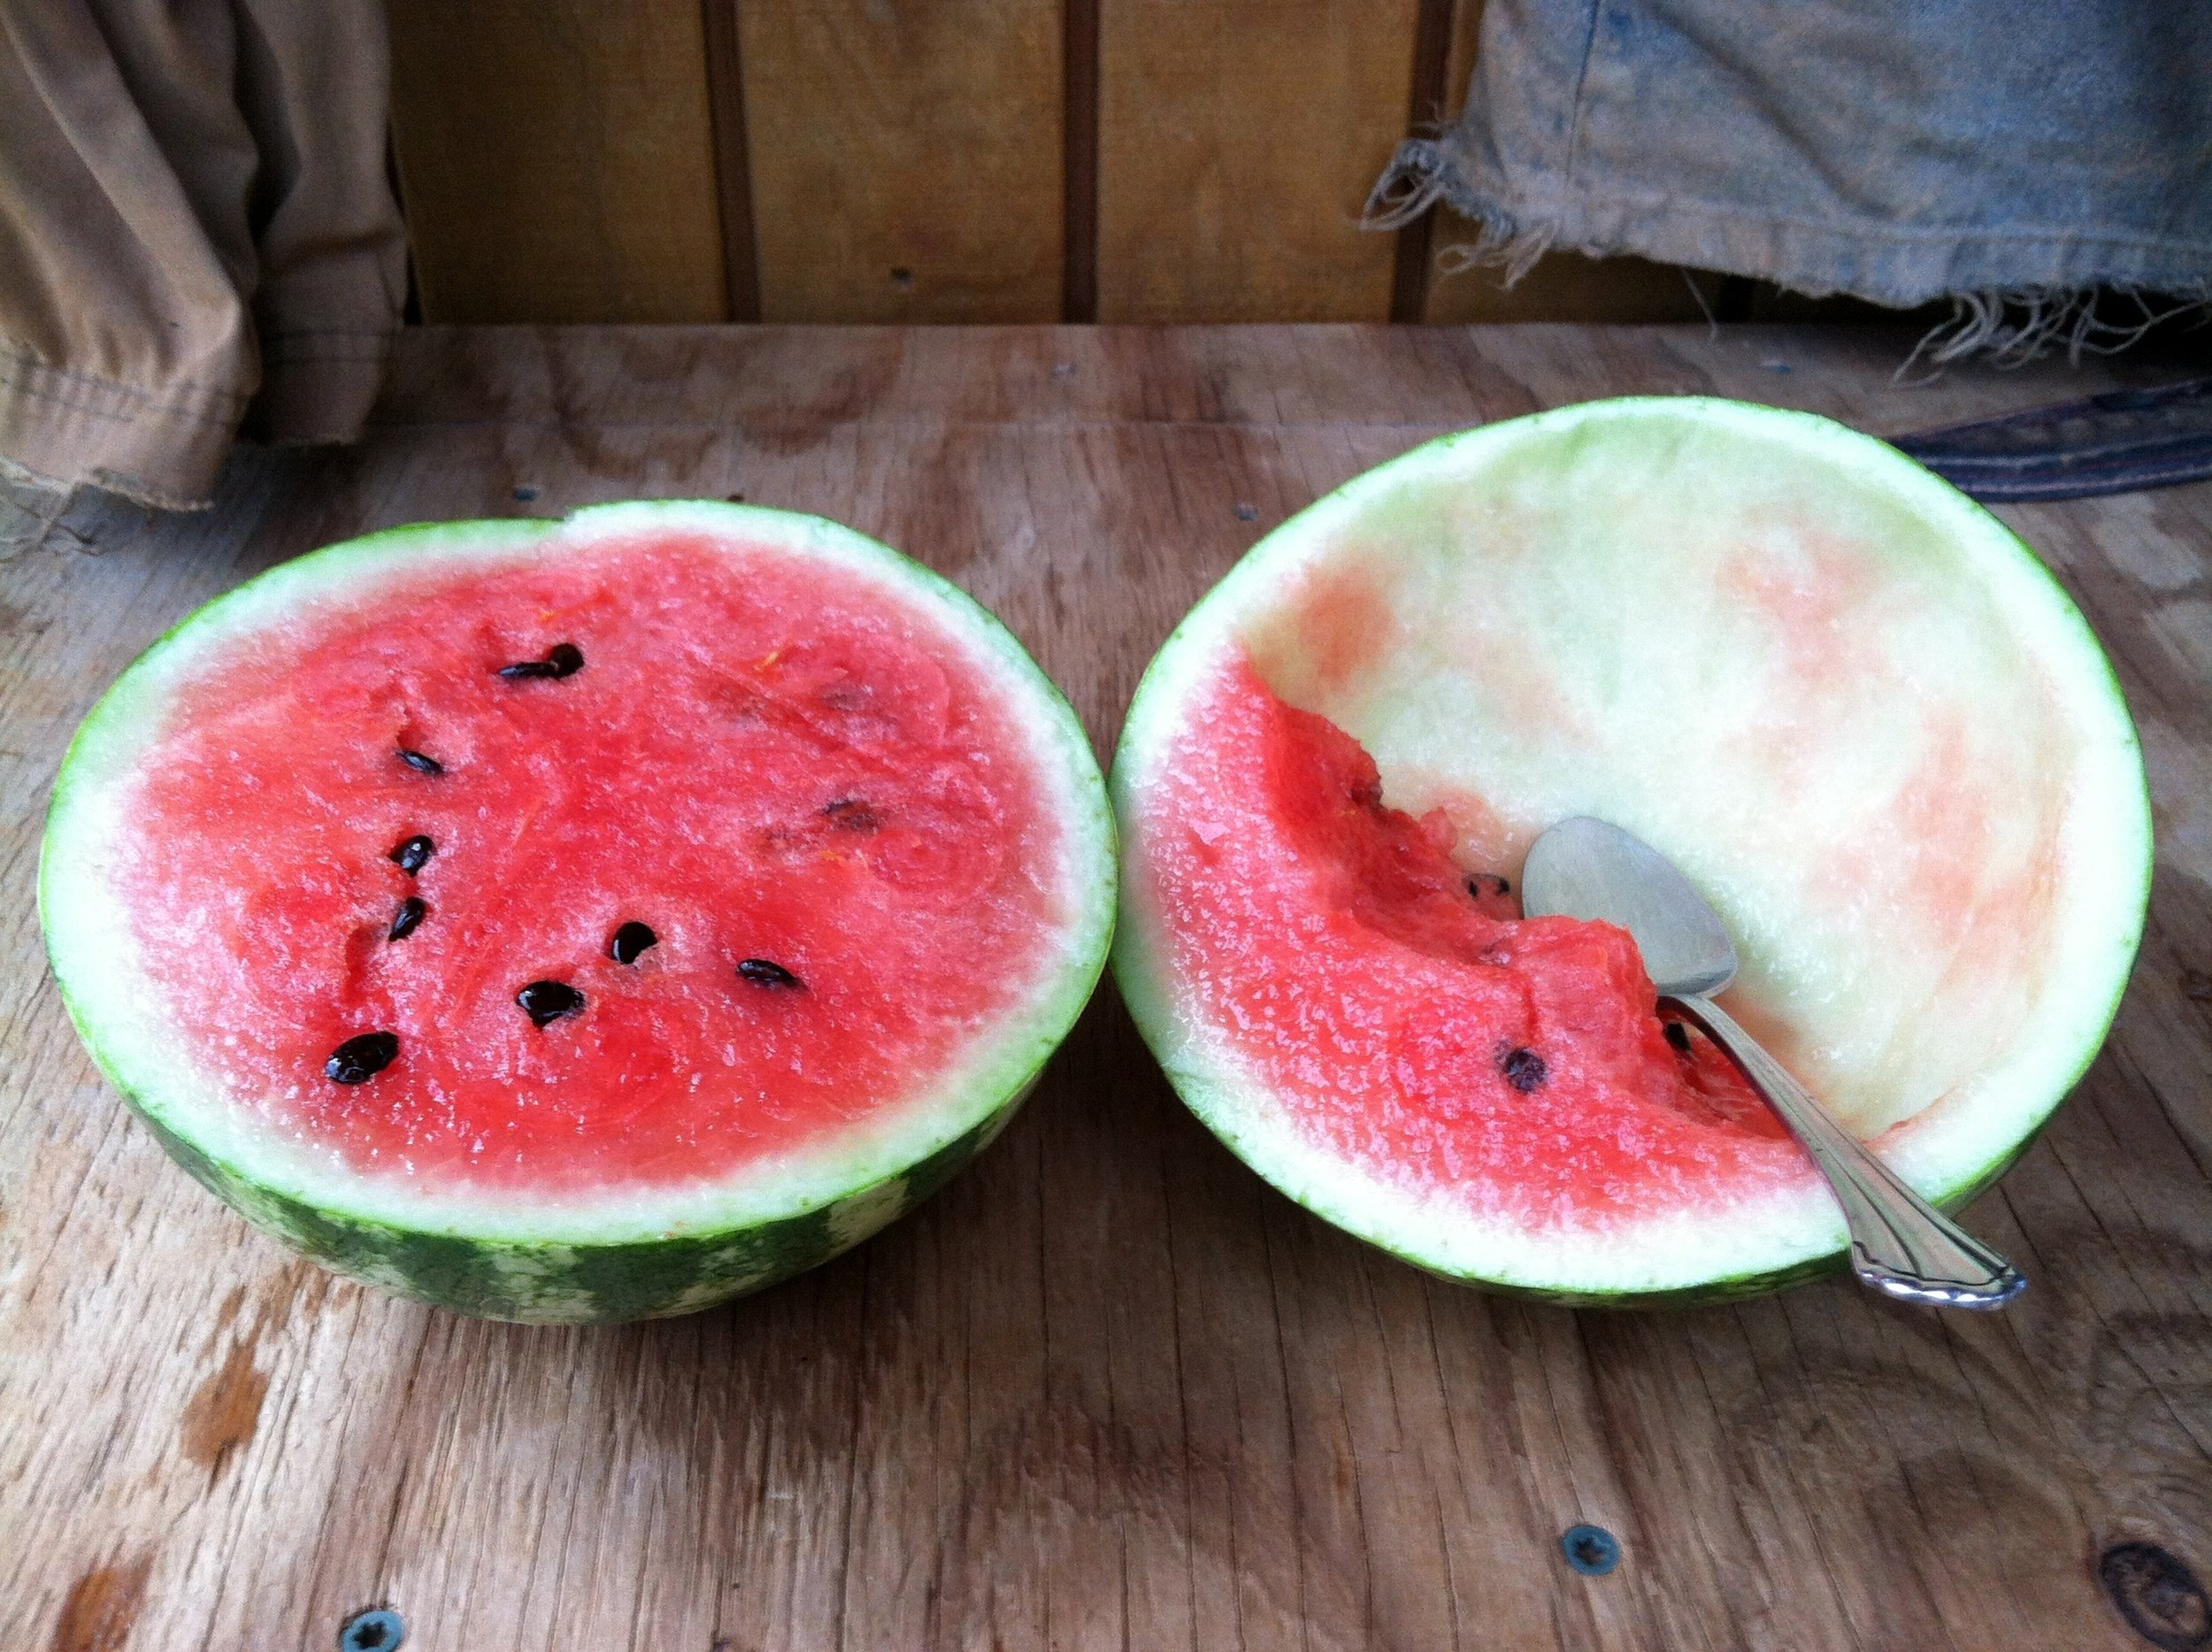 'Quetzali' sliced for easy eating. If I did not mention it in person, this is the easiest way to turn an 'icebox' watermelon into snack. For the record, the watermelons we have in the field this year are: 'Blacktail Mountain,' 'Early Moonbeam,' 'Cream of Saskatchewan,' 'Sugar Baby,' 'Sweet Dakota Rose,' 'Quetzali,' 'Orangeglo,' and 'Moon & Stars.'